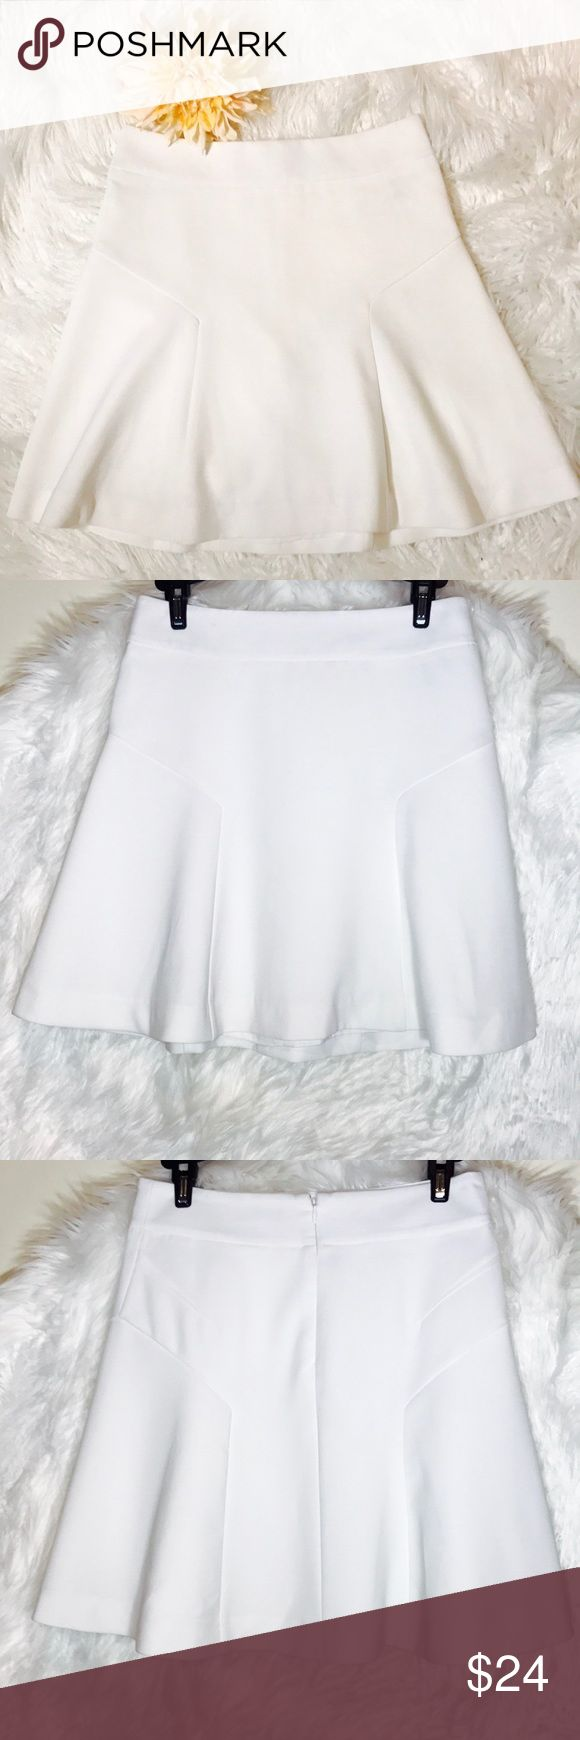 "Express White Skater Skirt A fun, feminine shape in light fabric with silky lining for anytime your feel like it. Try it with a cute lace cami when its time to party, or a soft tee for a more casual feel on the weekend. Laid flat across @ waist: 13.5"", length: 18"". NWOT Express Skirts"